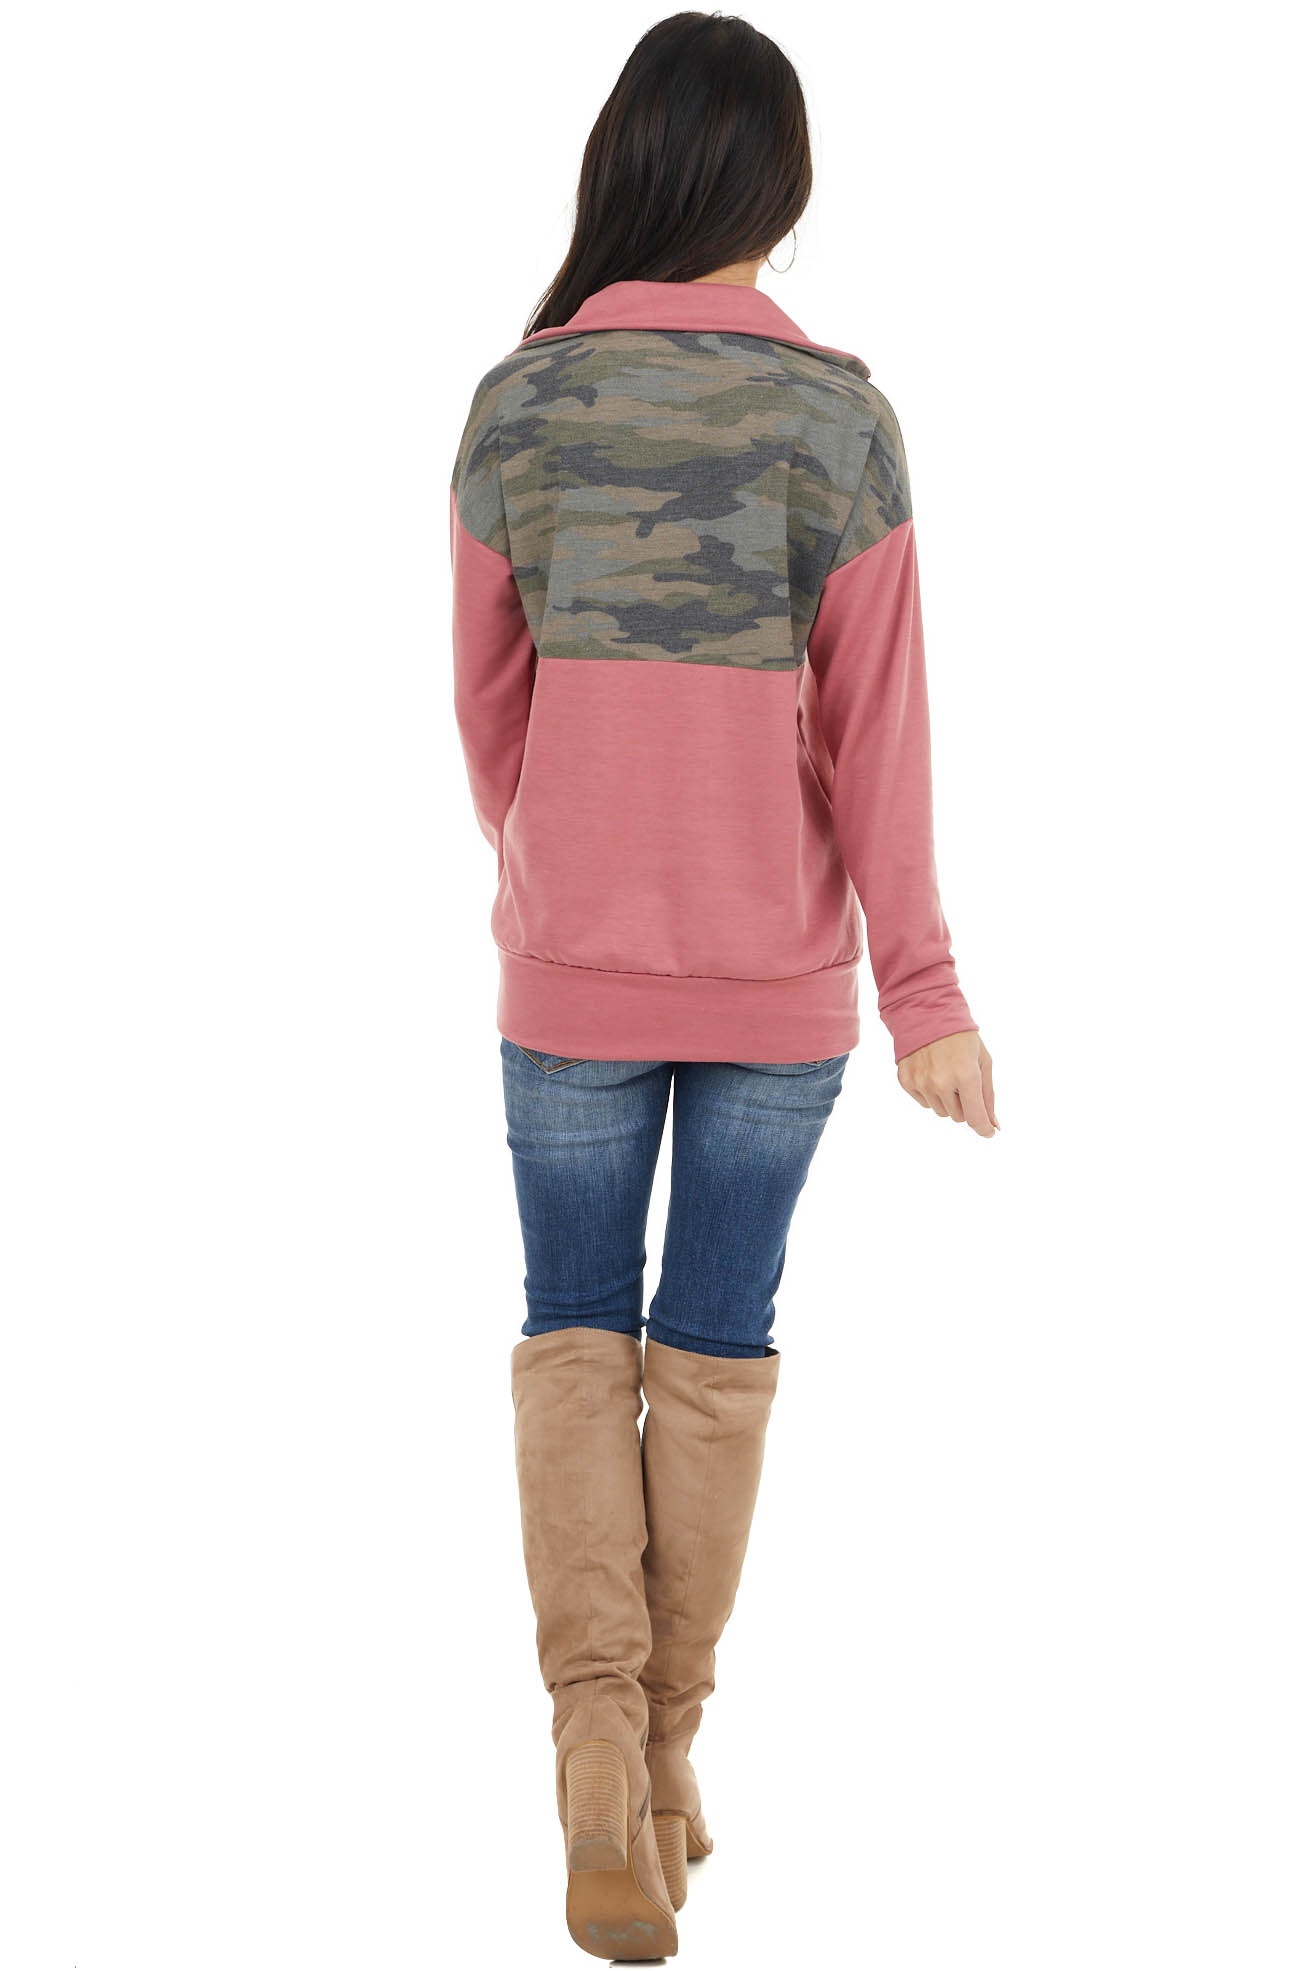 Dusty Rose and Camo Long Sleeve Pullover with Zipper Detail